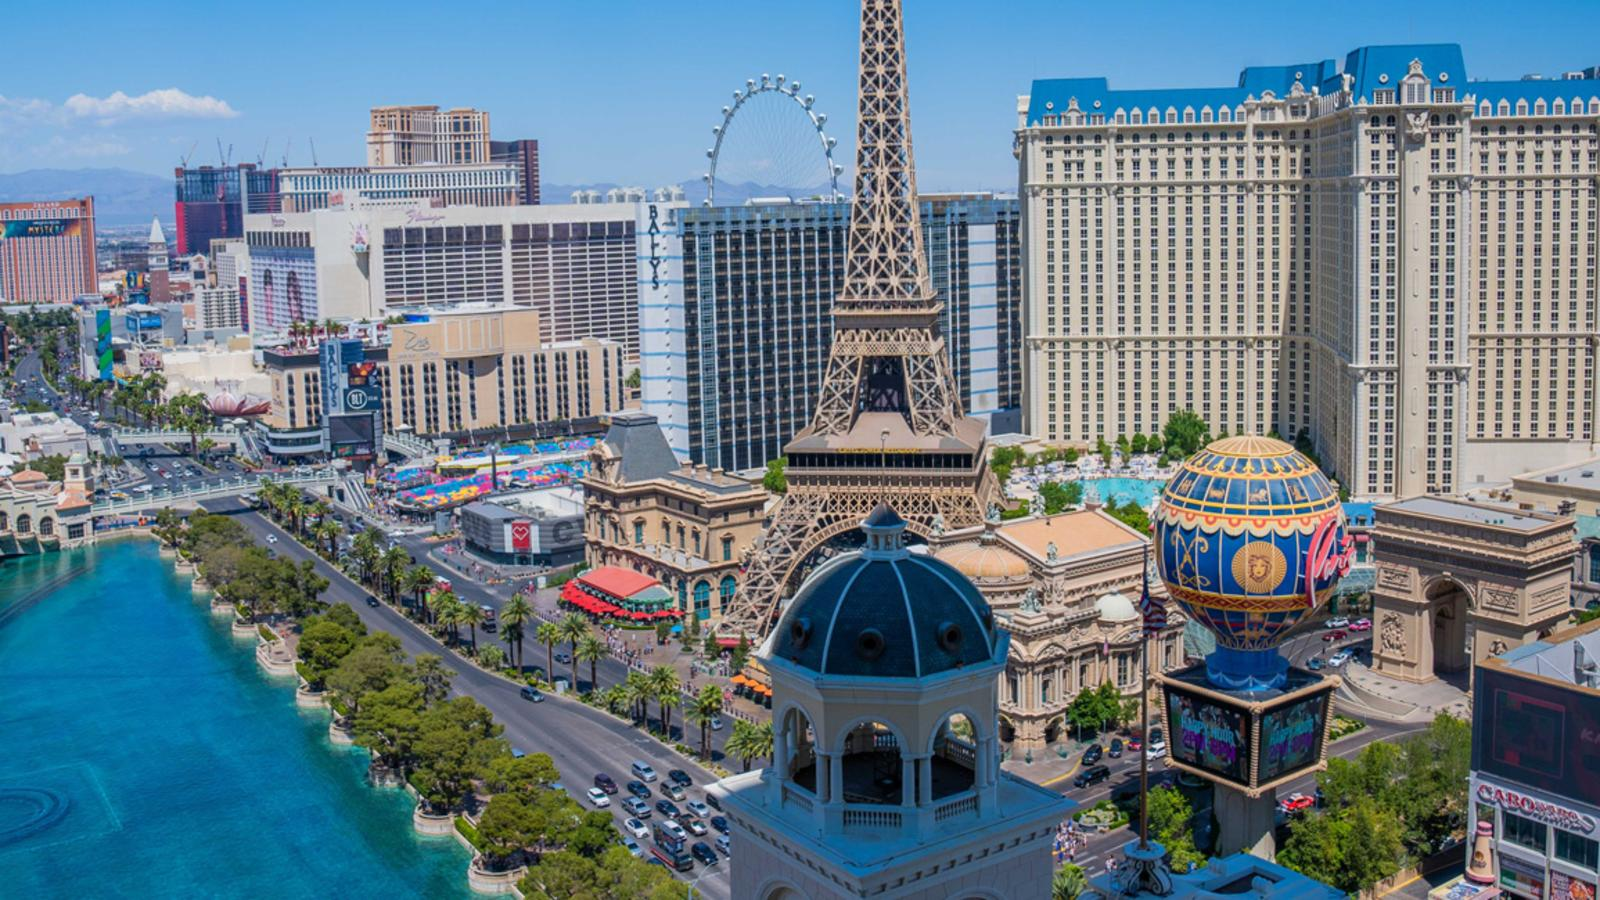 Las Vegas Hotels, Shows, Things to Do, Restaurants & Maps